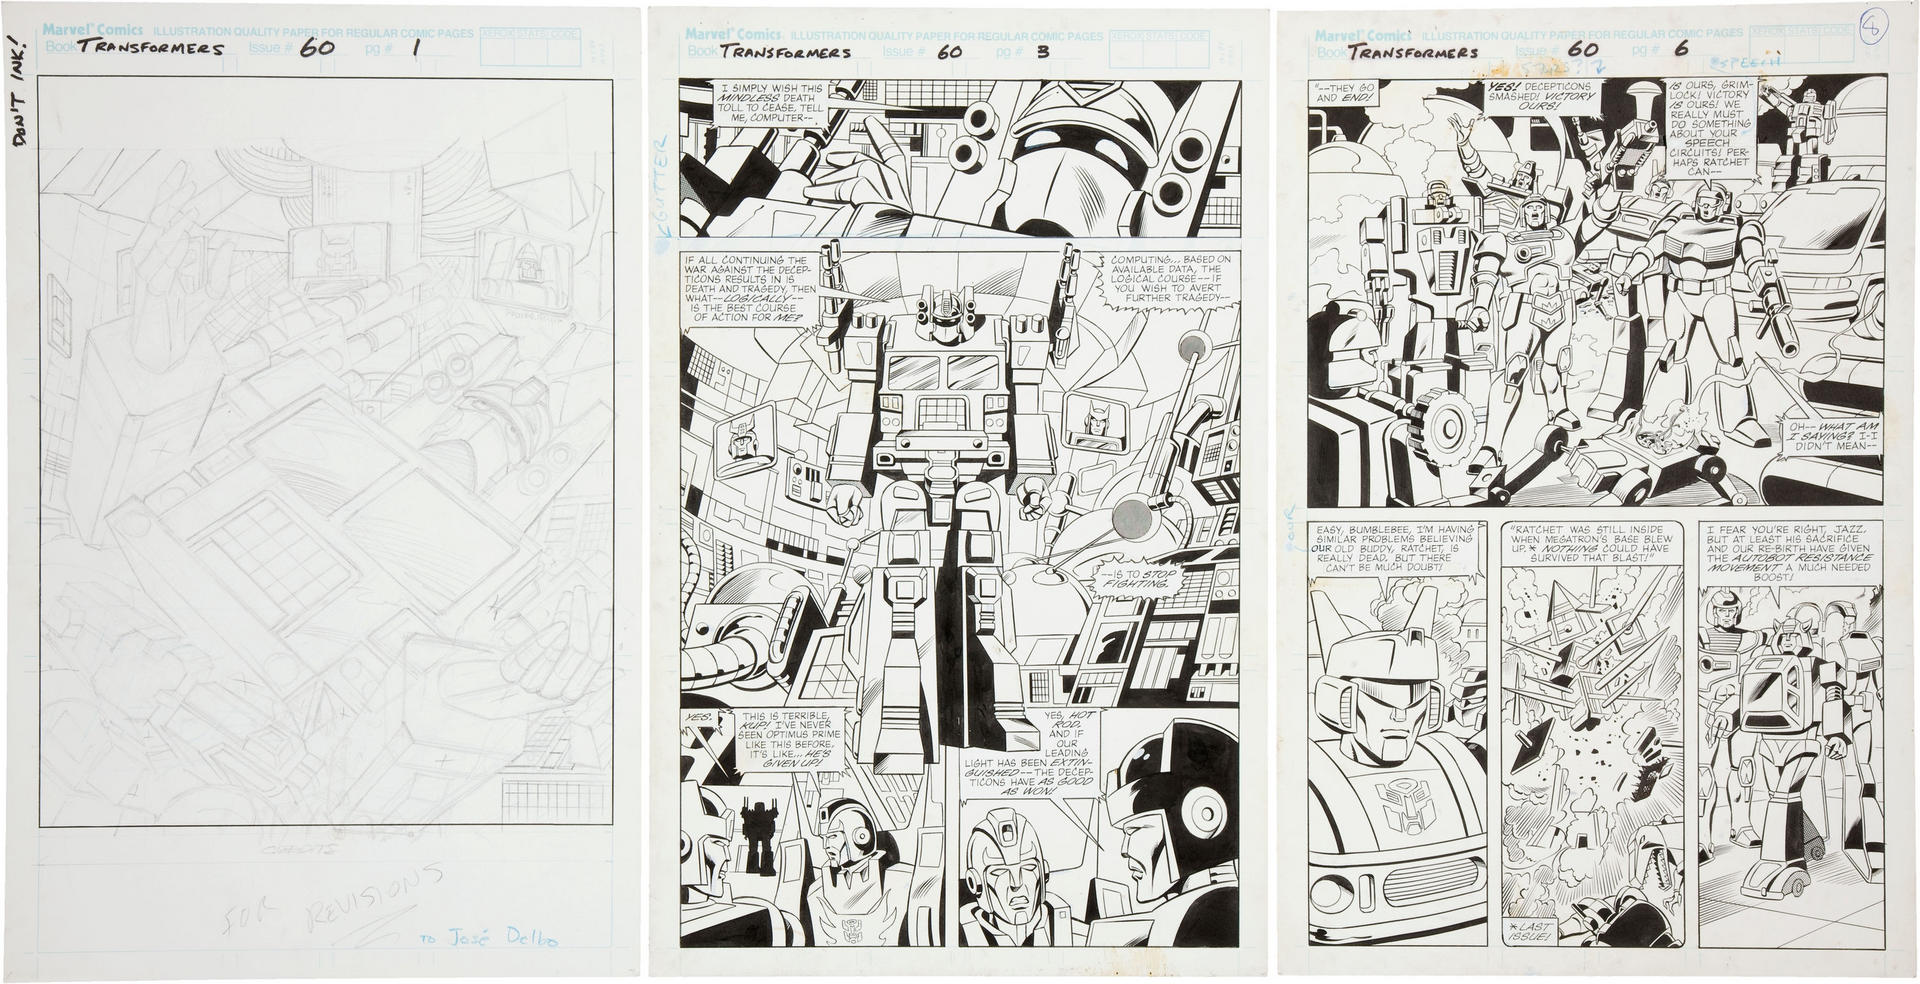 Be Nelson Yomtov! (Colorists, Tackle an Original Transformers Marvel Comics Page!)-jose-20delbo-20transformers-2060-20pages.jpg